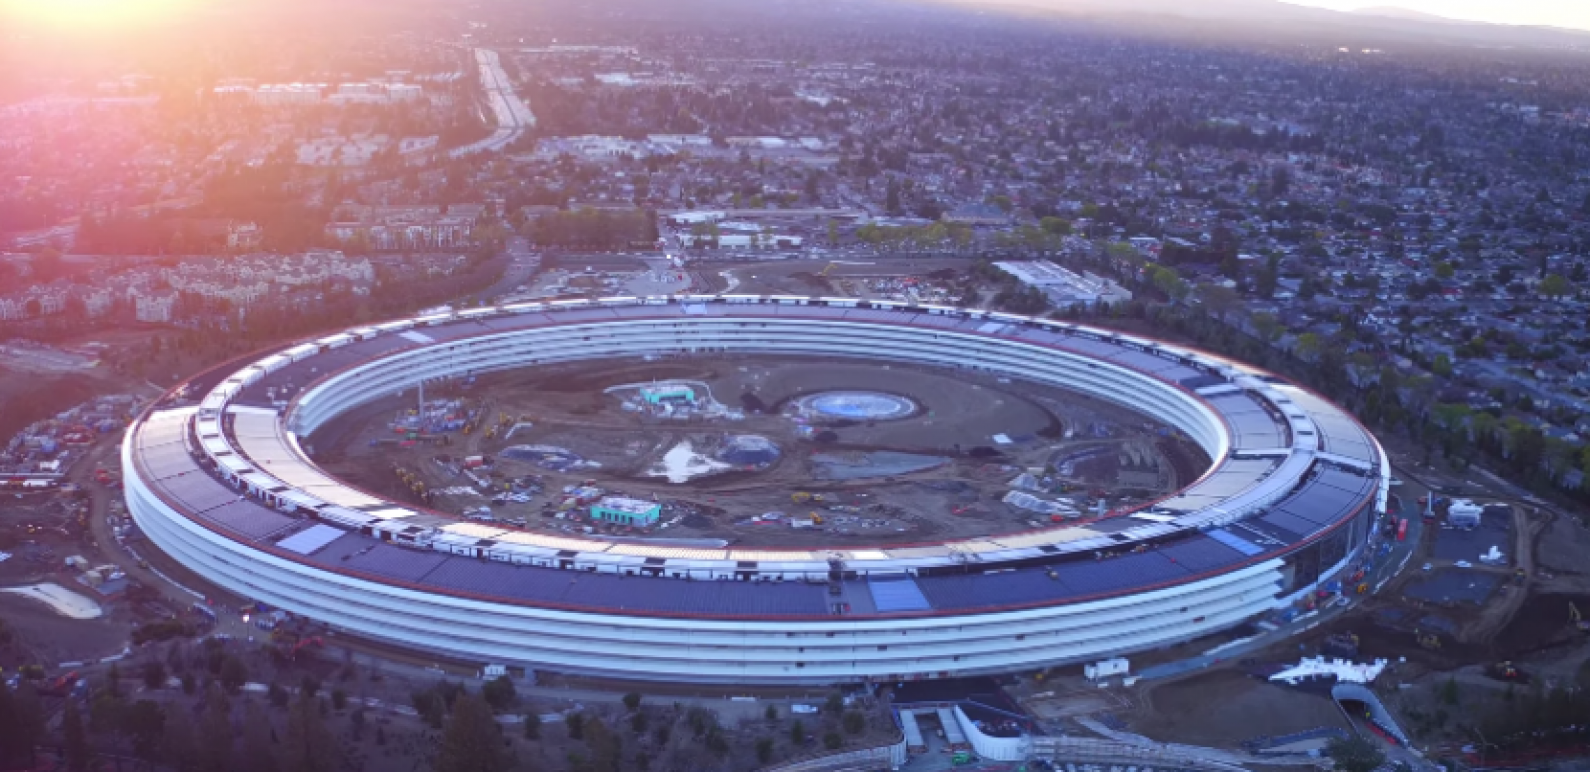 Meet Apple Park: The 175-Acre Apple Campus with a Spaceship